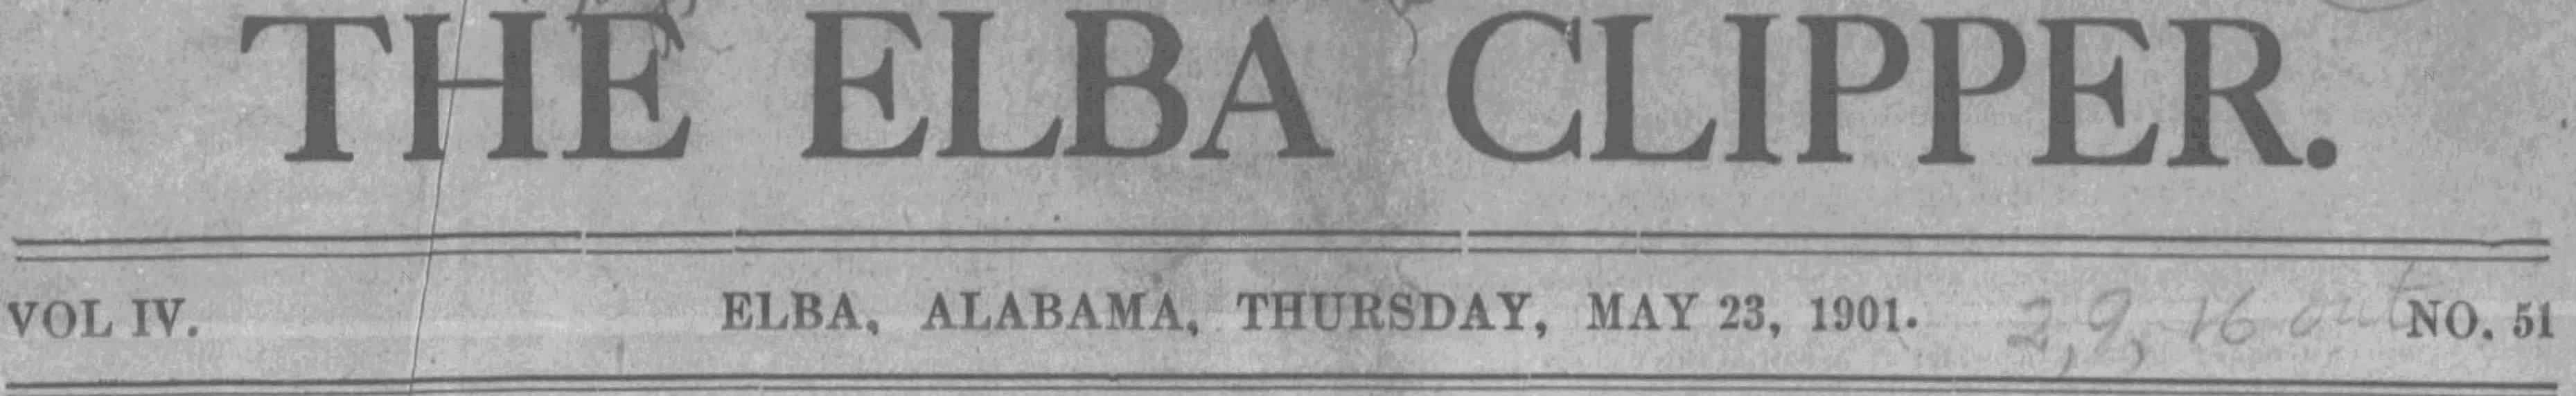 Patron – Patriotism saved a man from jail sentence May 23, 1901 in Elba, Alabama